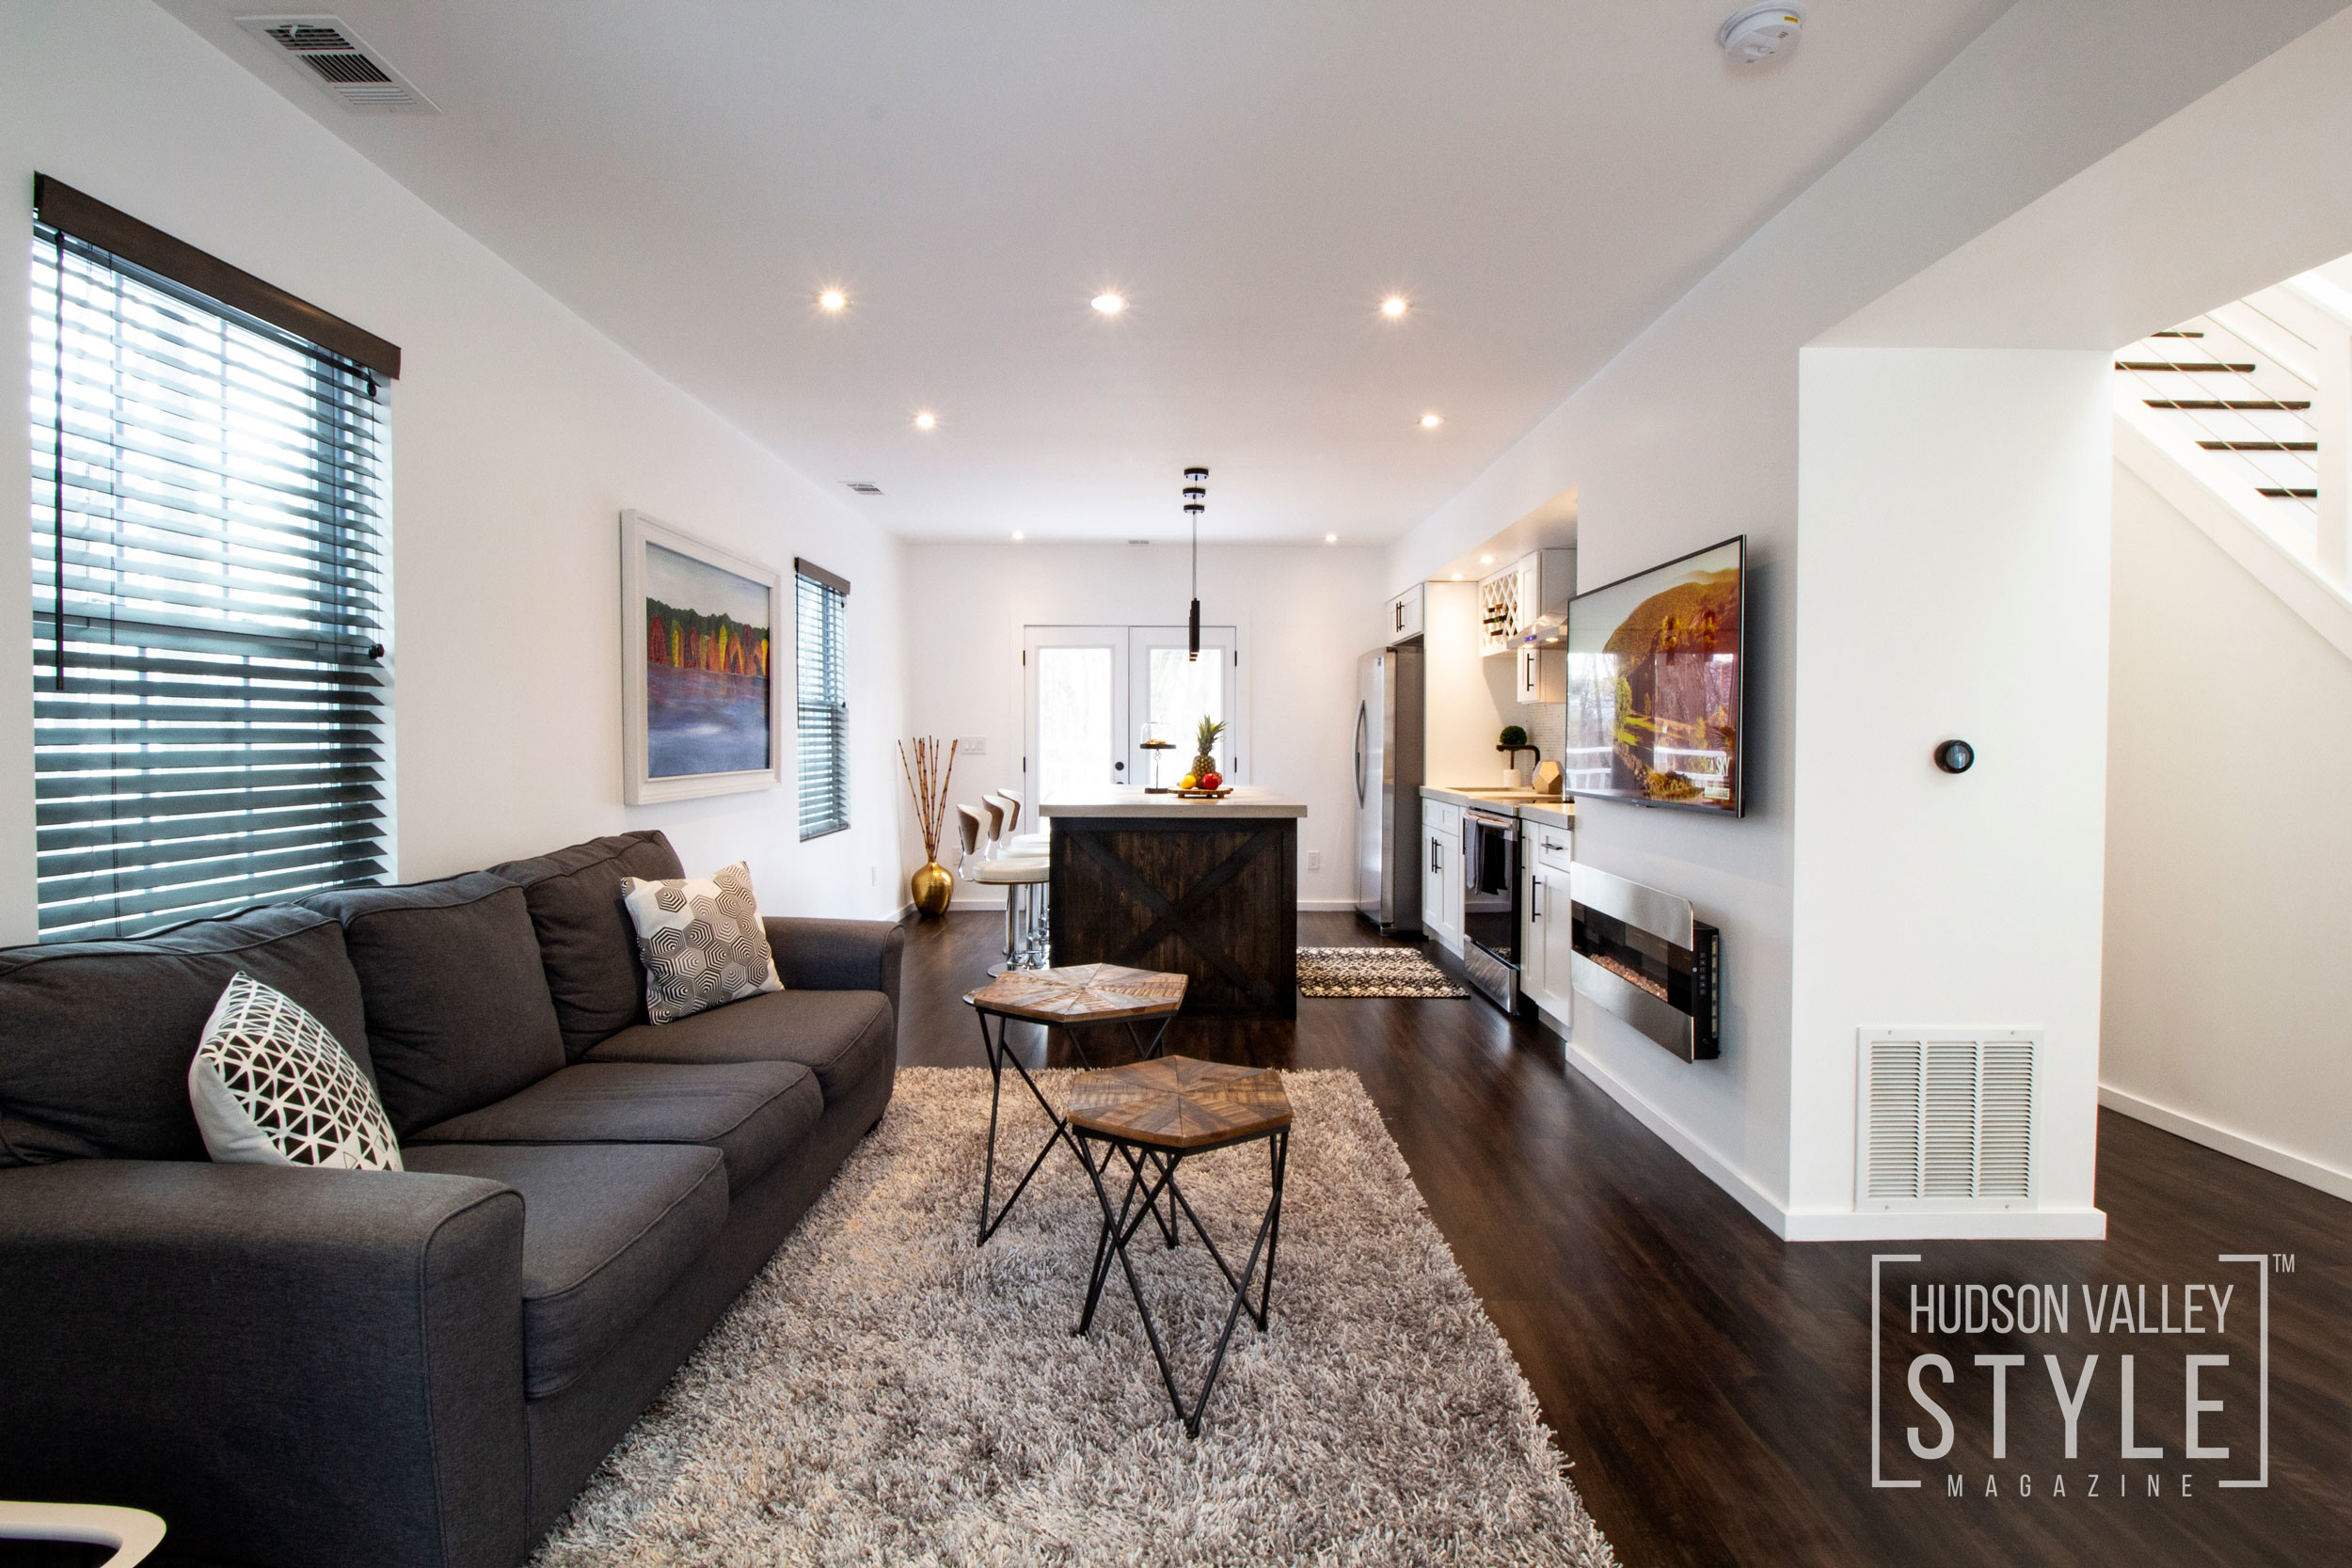 How to Ensure You Get the Best Price When Selling Your Home byMaxwell Alexander, REALTOR®, Editor in Chief, Hudson Valley Style Magazine